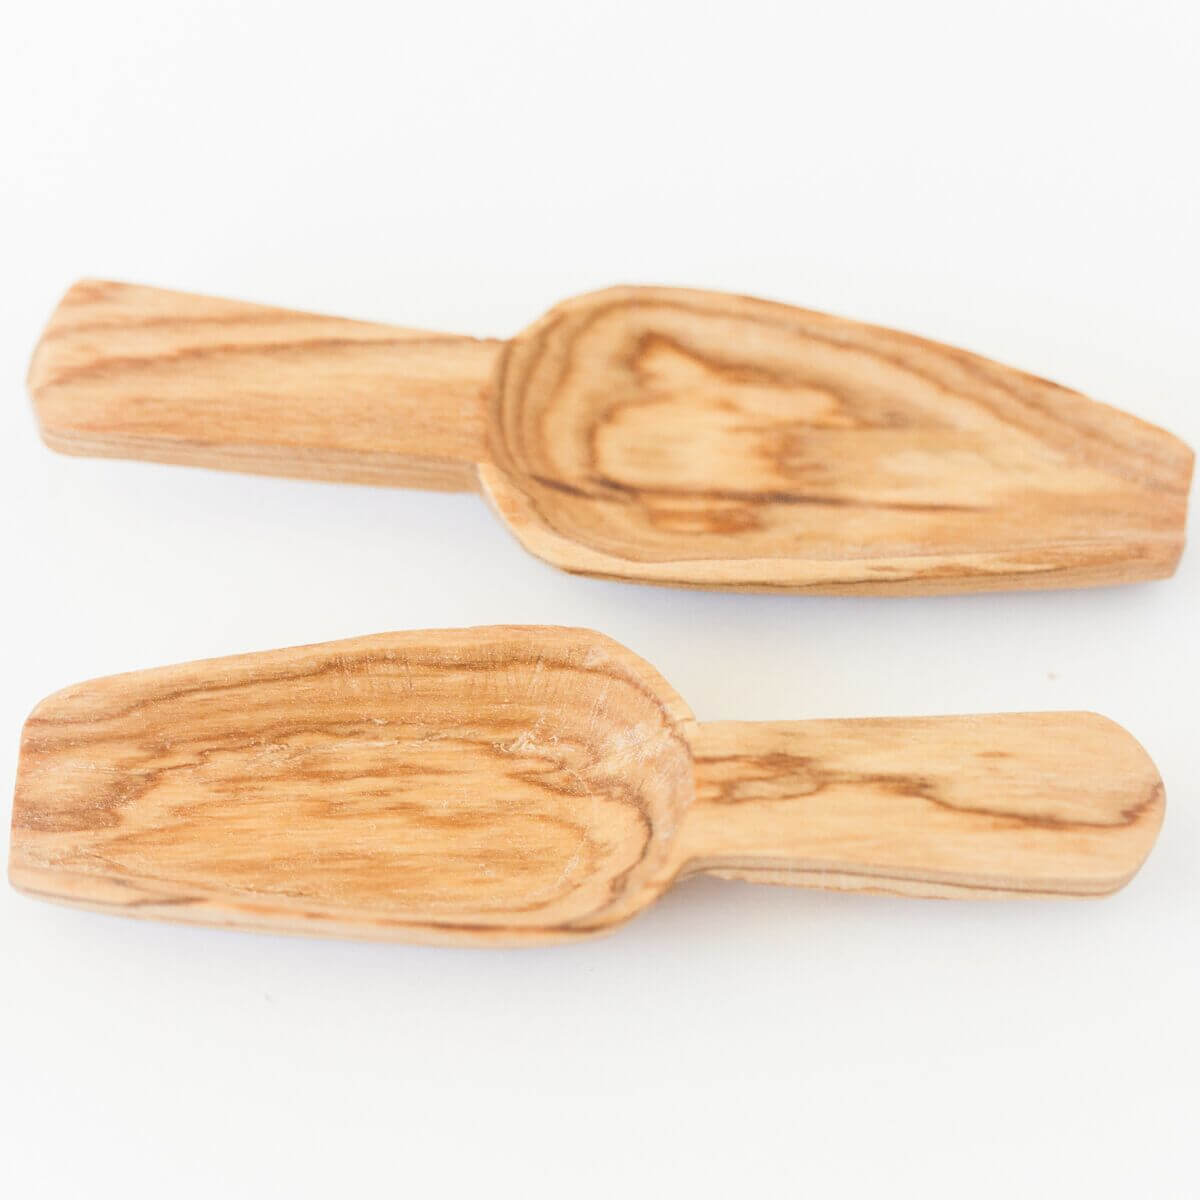 Acacia Creations Olive Wood Spice Scoop Set Jungle Pillows